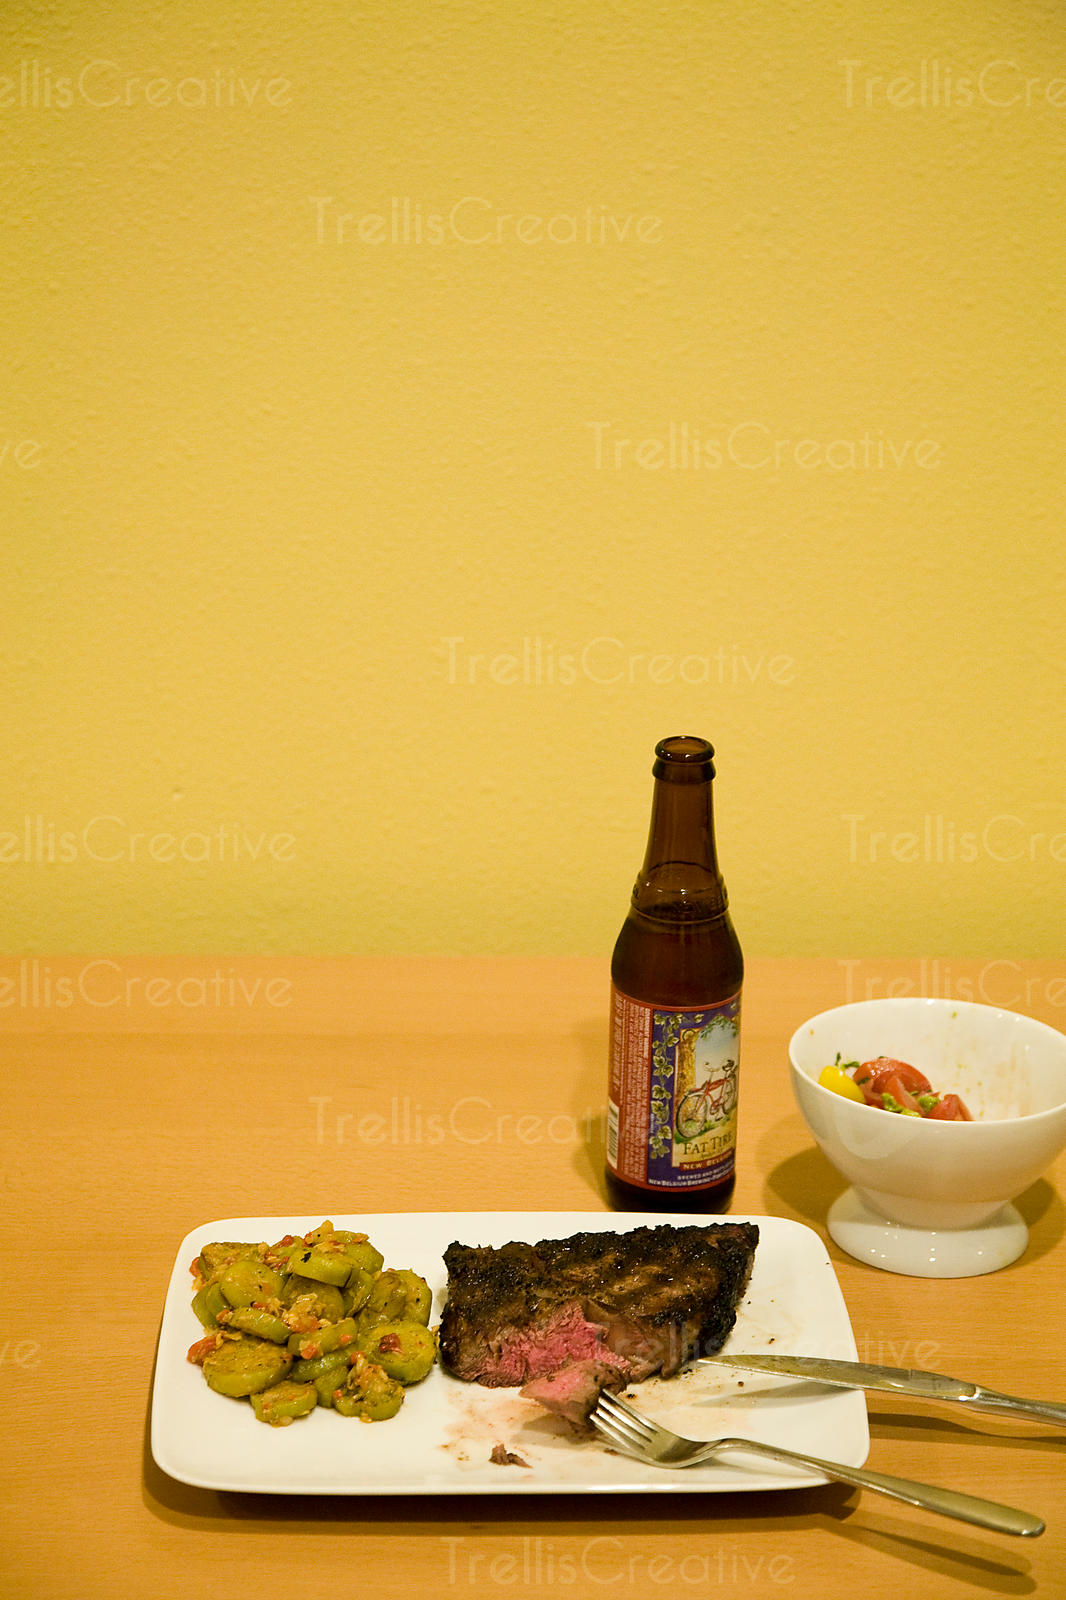 A rare steak with side dishes and a beer